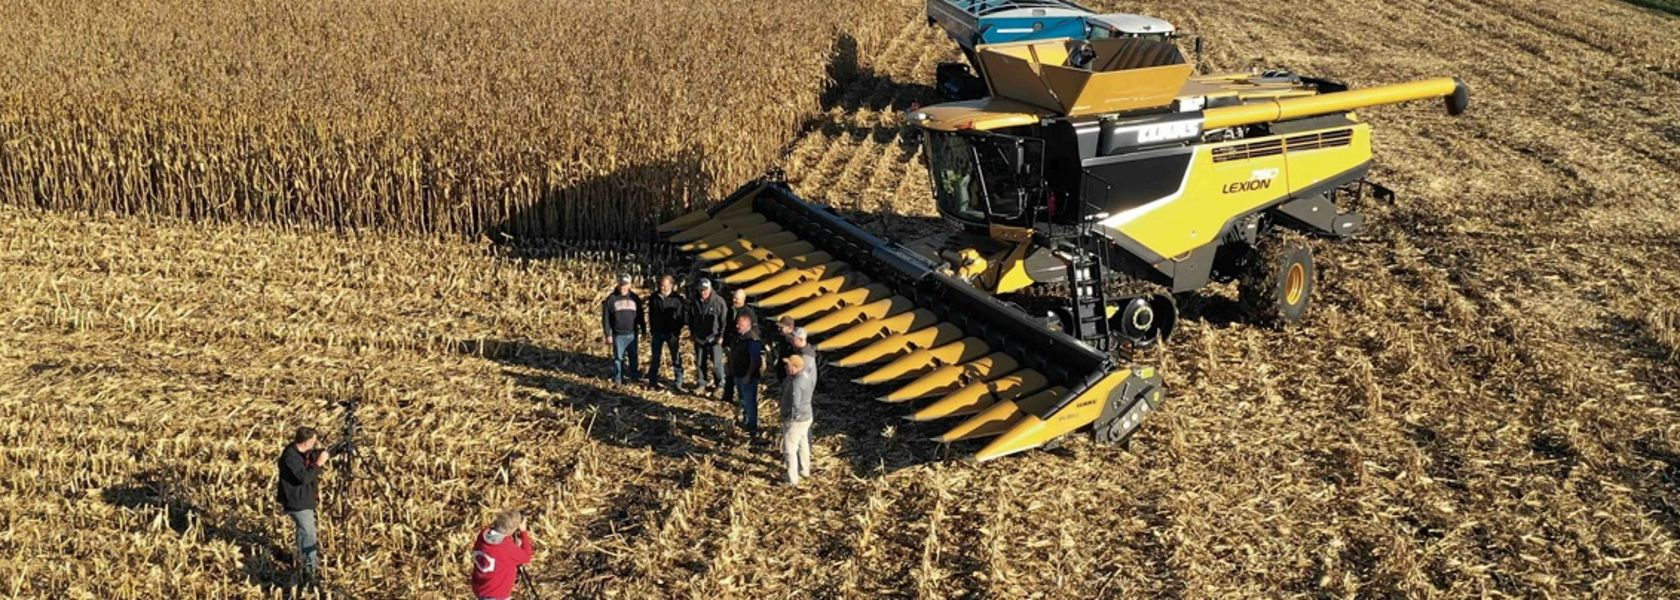 Maize harvest record broken by Lexion